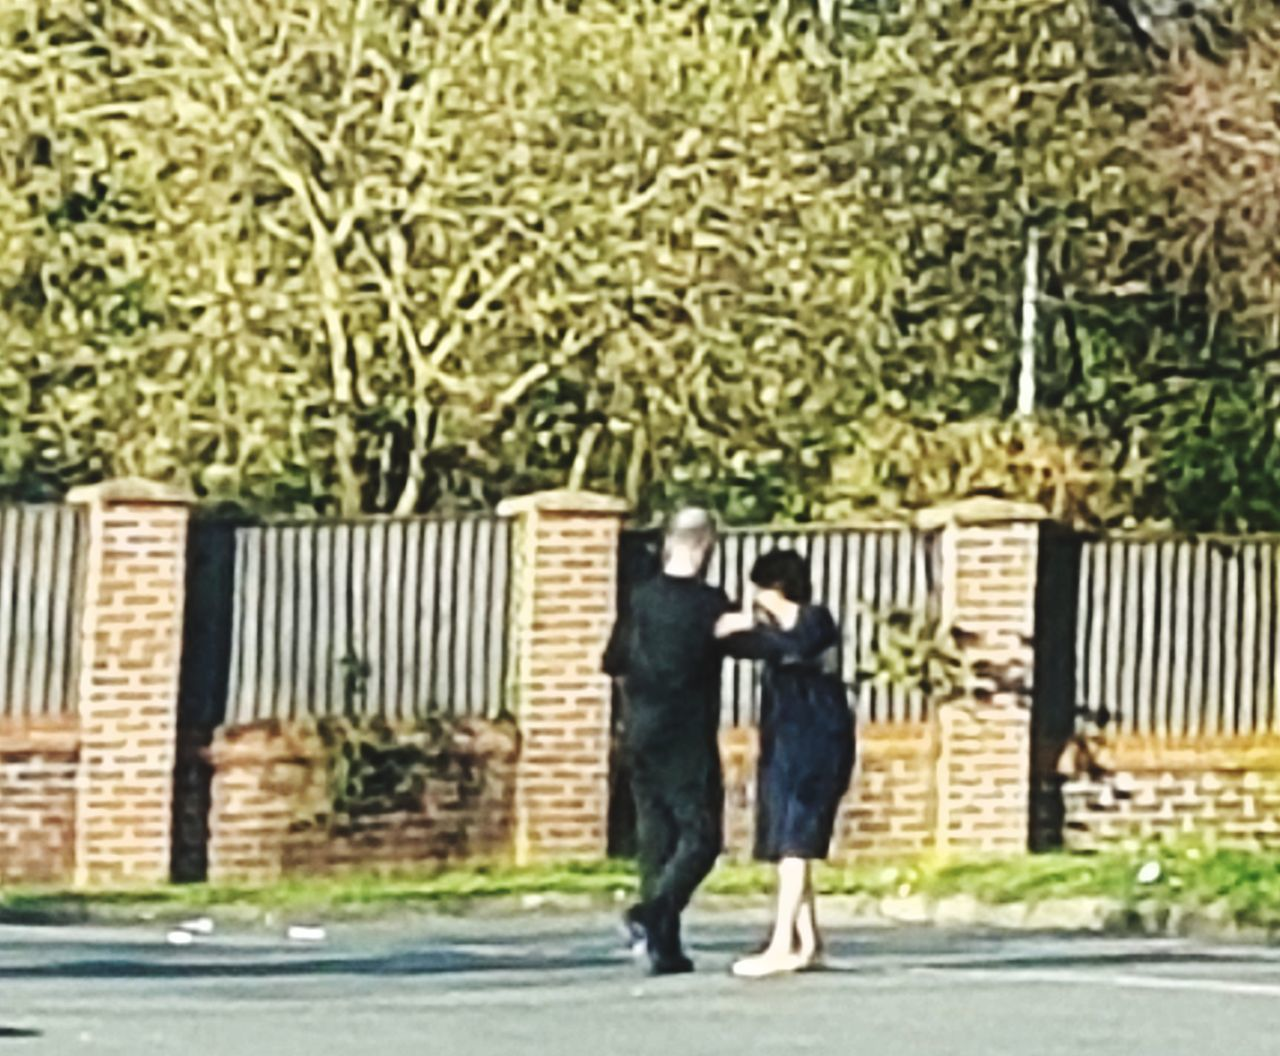 Things we see on a pretty spring day. A couple practise their dance steps in the car park. Full Length Two People Adults Only Outdoors Togetherness People Human Body Part Dancemusic Dance ❤ Dance Like Nobodys Watching. Love Like Youve Never Been Hurt. Sing Like Nobodys Listening. Live Like Its Heaven On Earth. Down At The Park Wish I Could Have Been Closer Tenderness Tender Moments TCPM